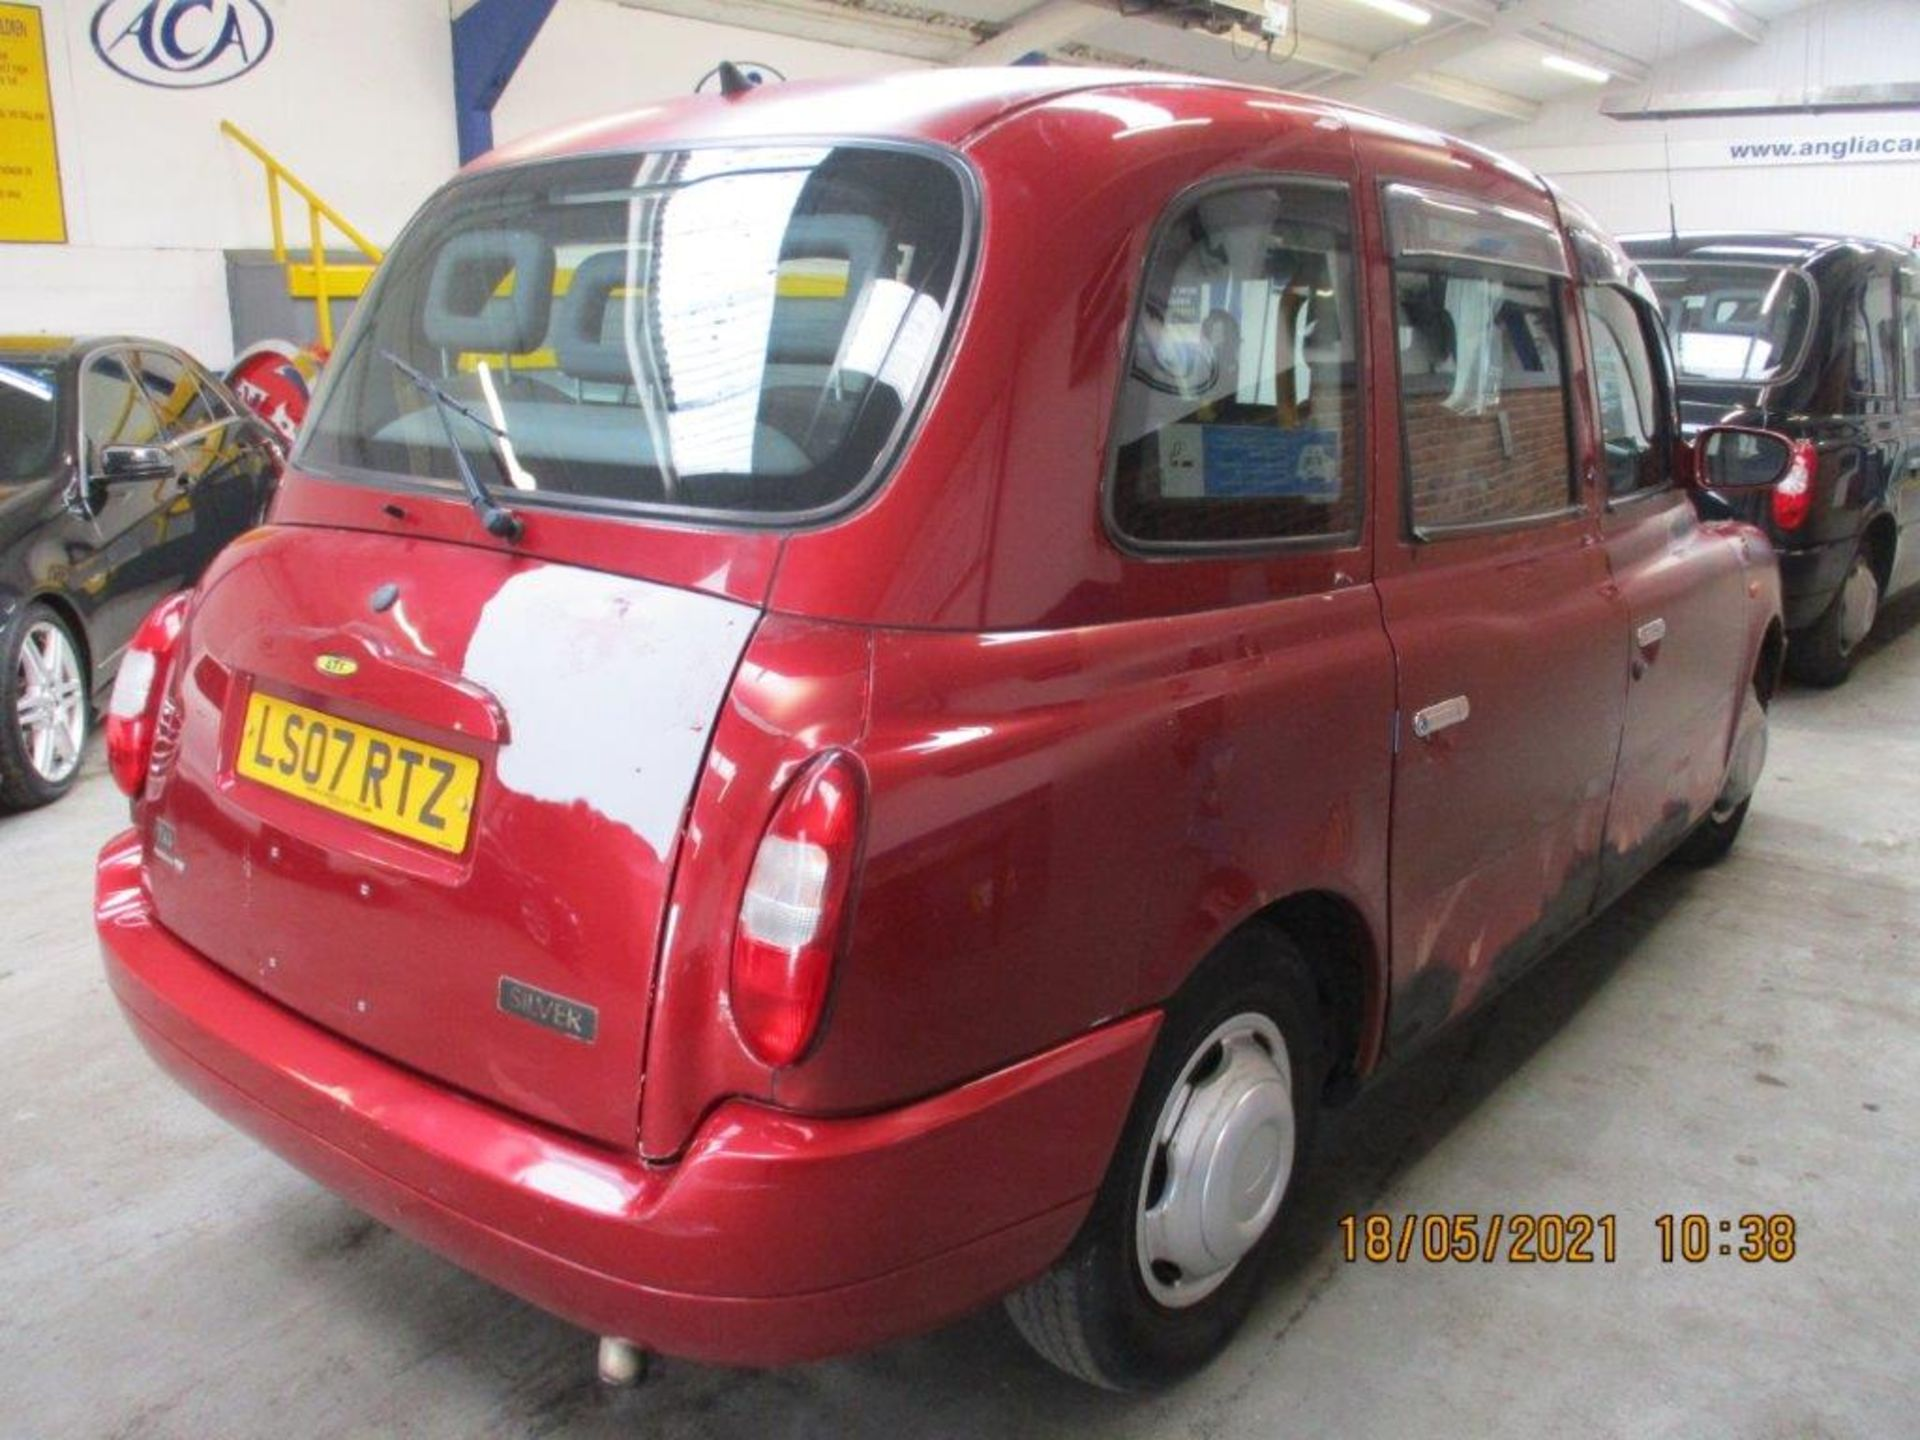 07 07 London Taxis Int TX4 Silver - Image 4 of 20